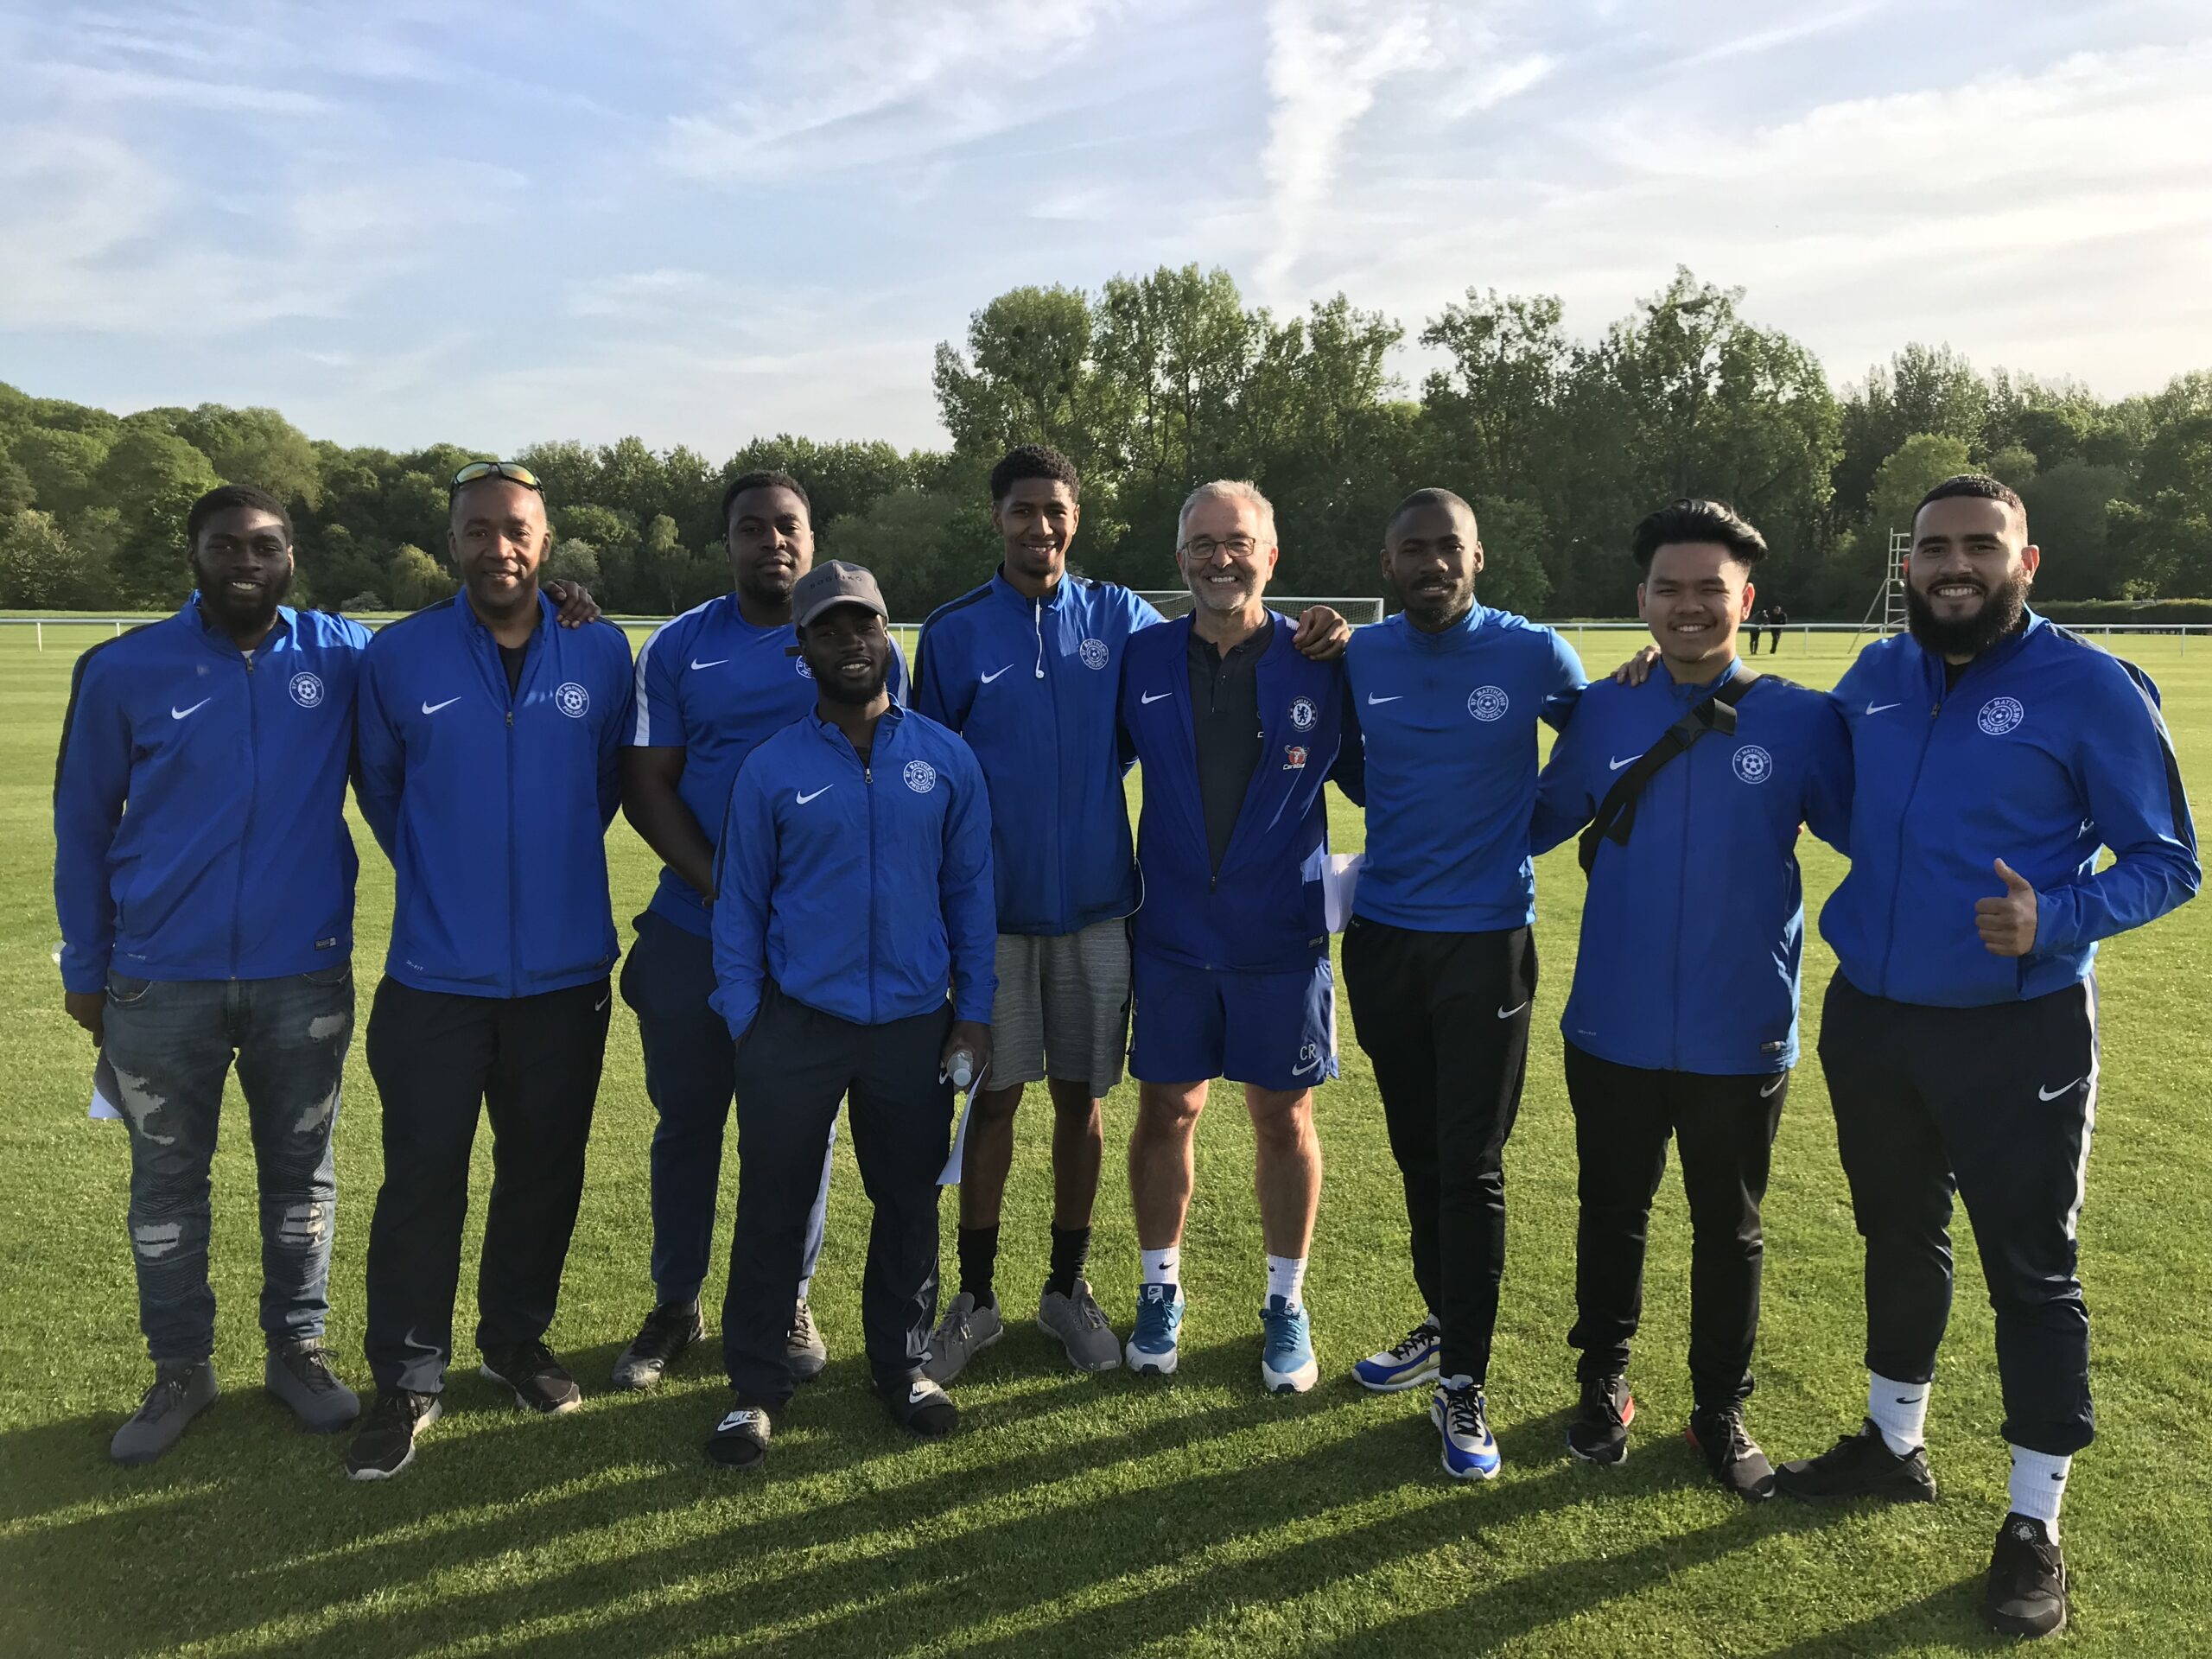 St. Matthew's Project - Sport has brought opportunities and growth to Brixton's youth for  16 years